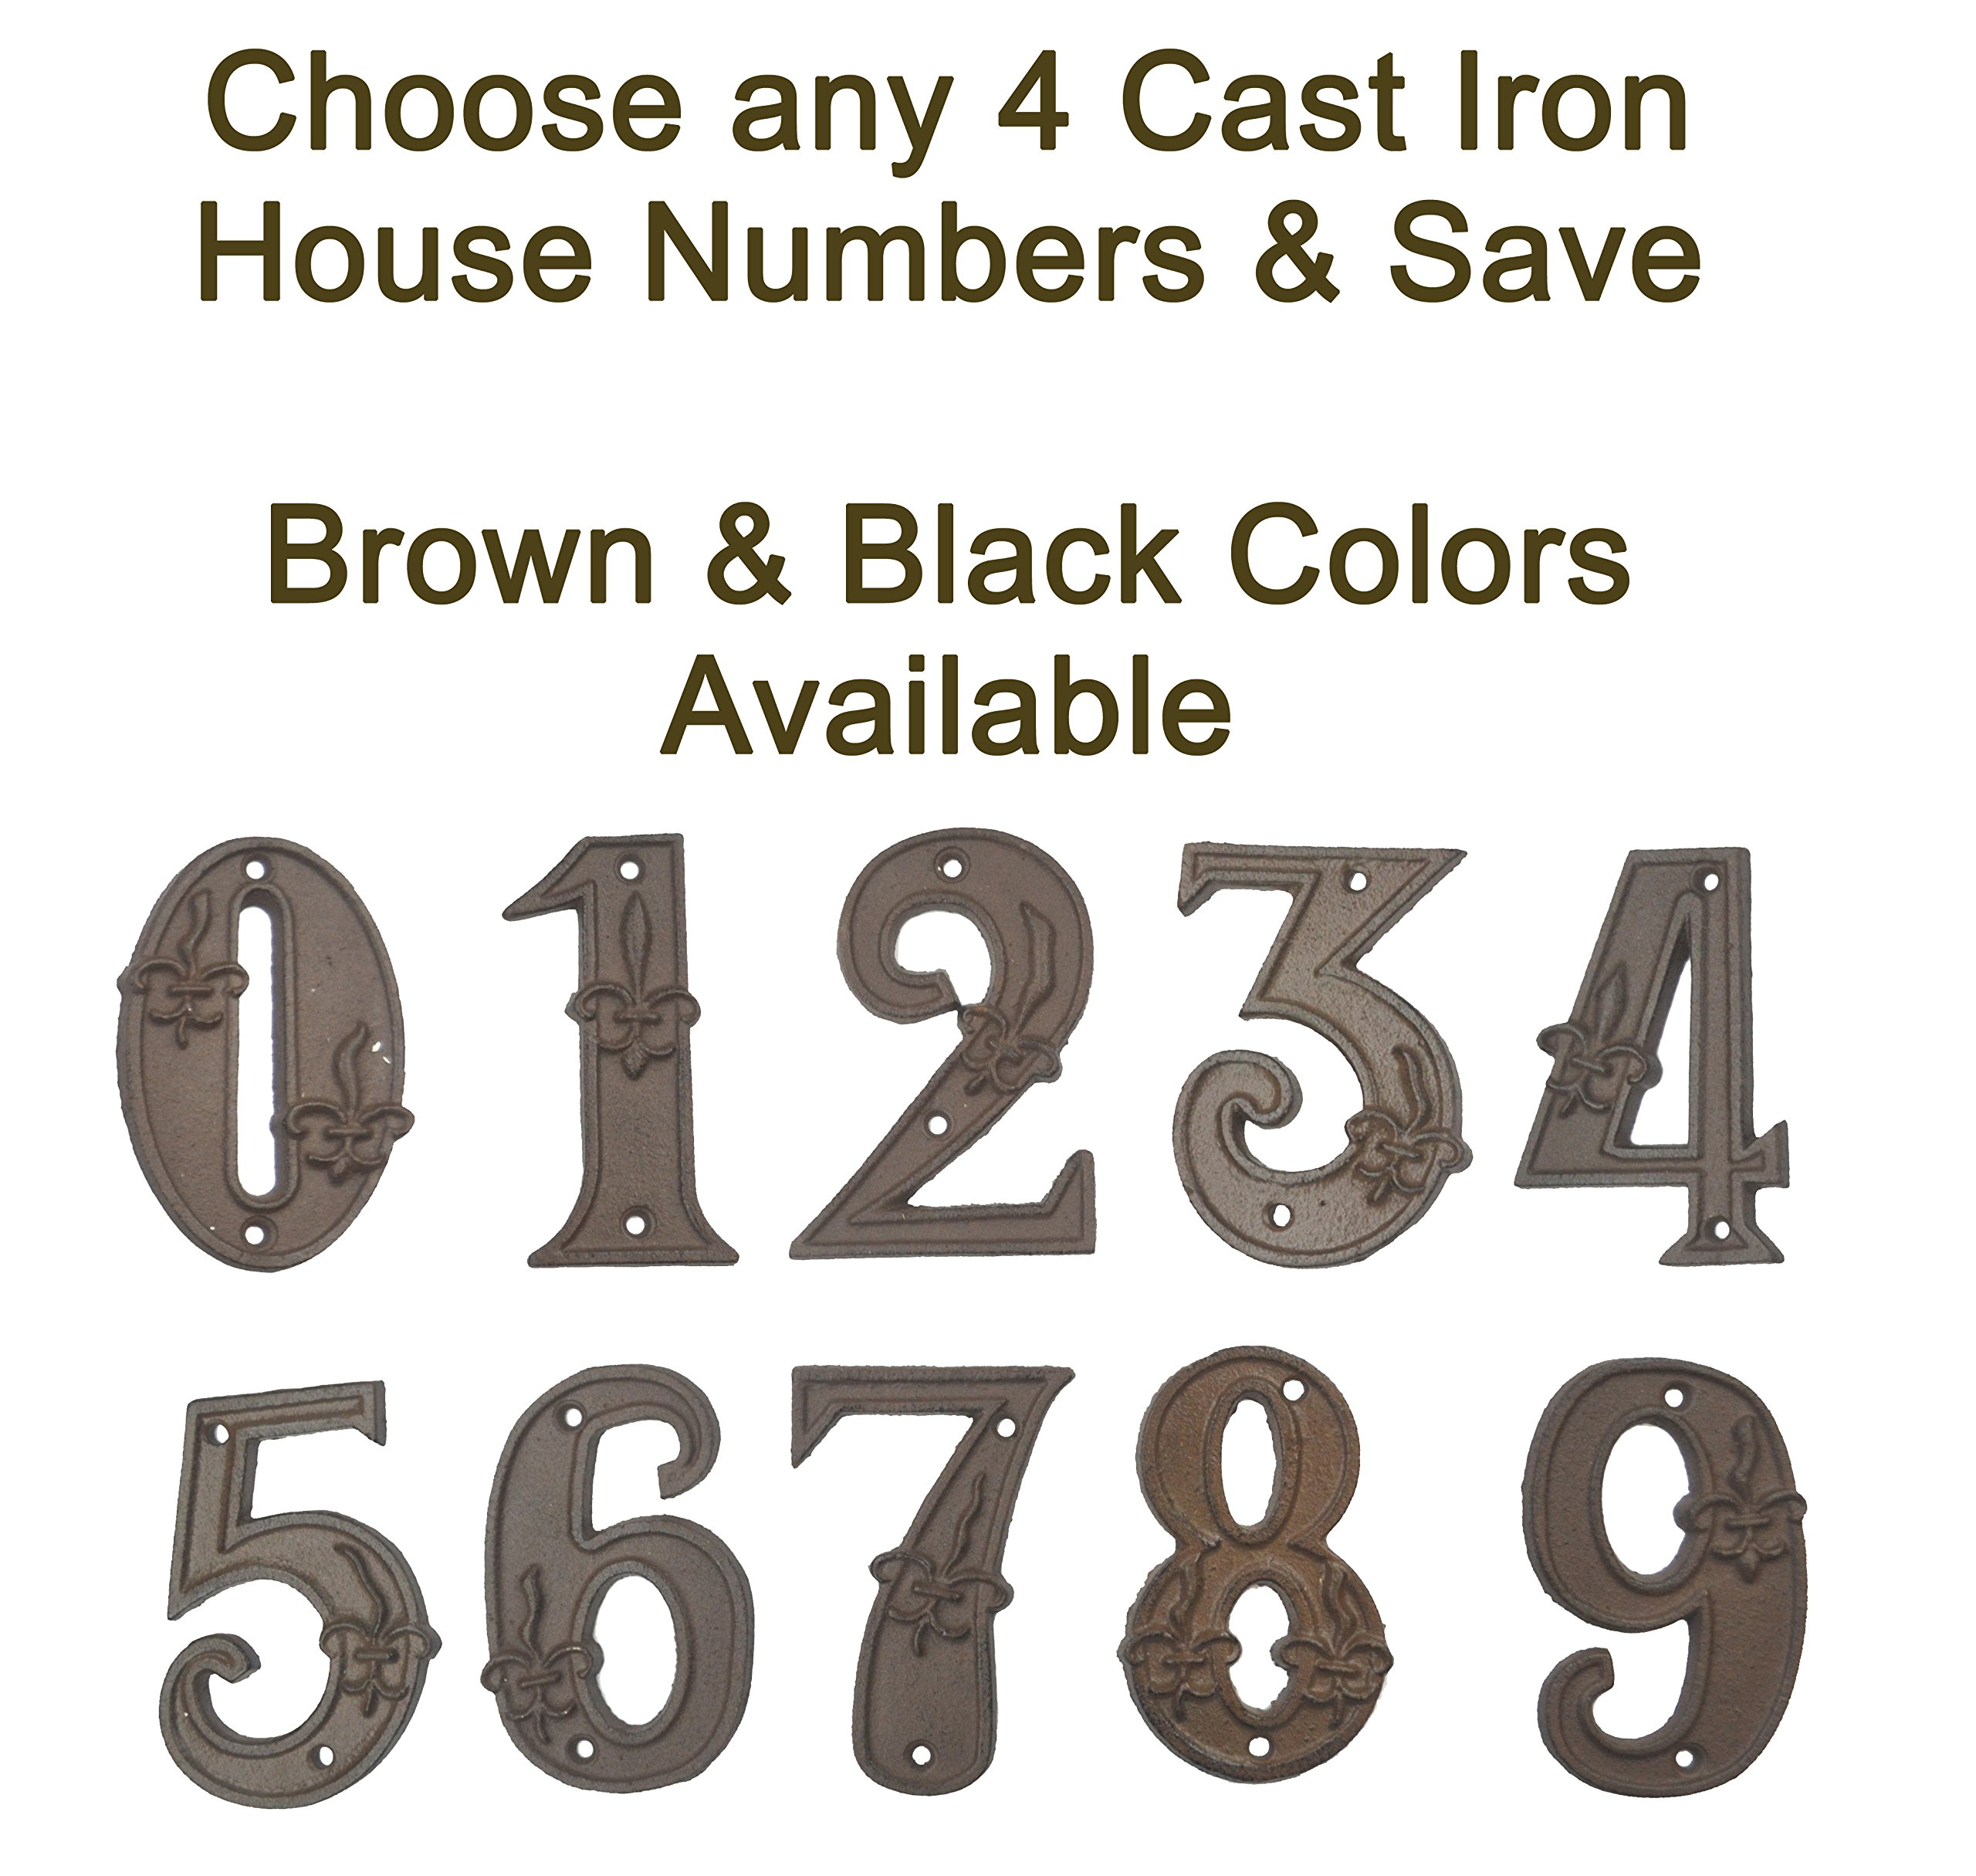 Lulu Decor, 100% Cast Iron House Numbers, Black or Brown with Fleur De Lis (Any 4 Numbers, Bulk Discount)